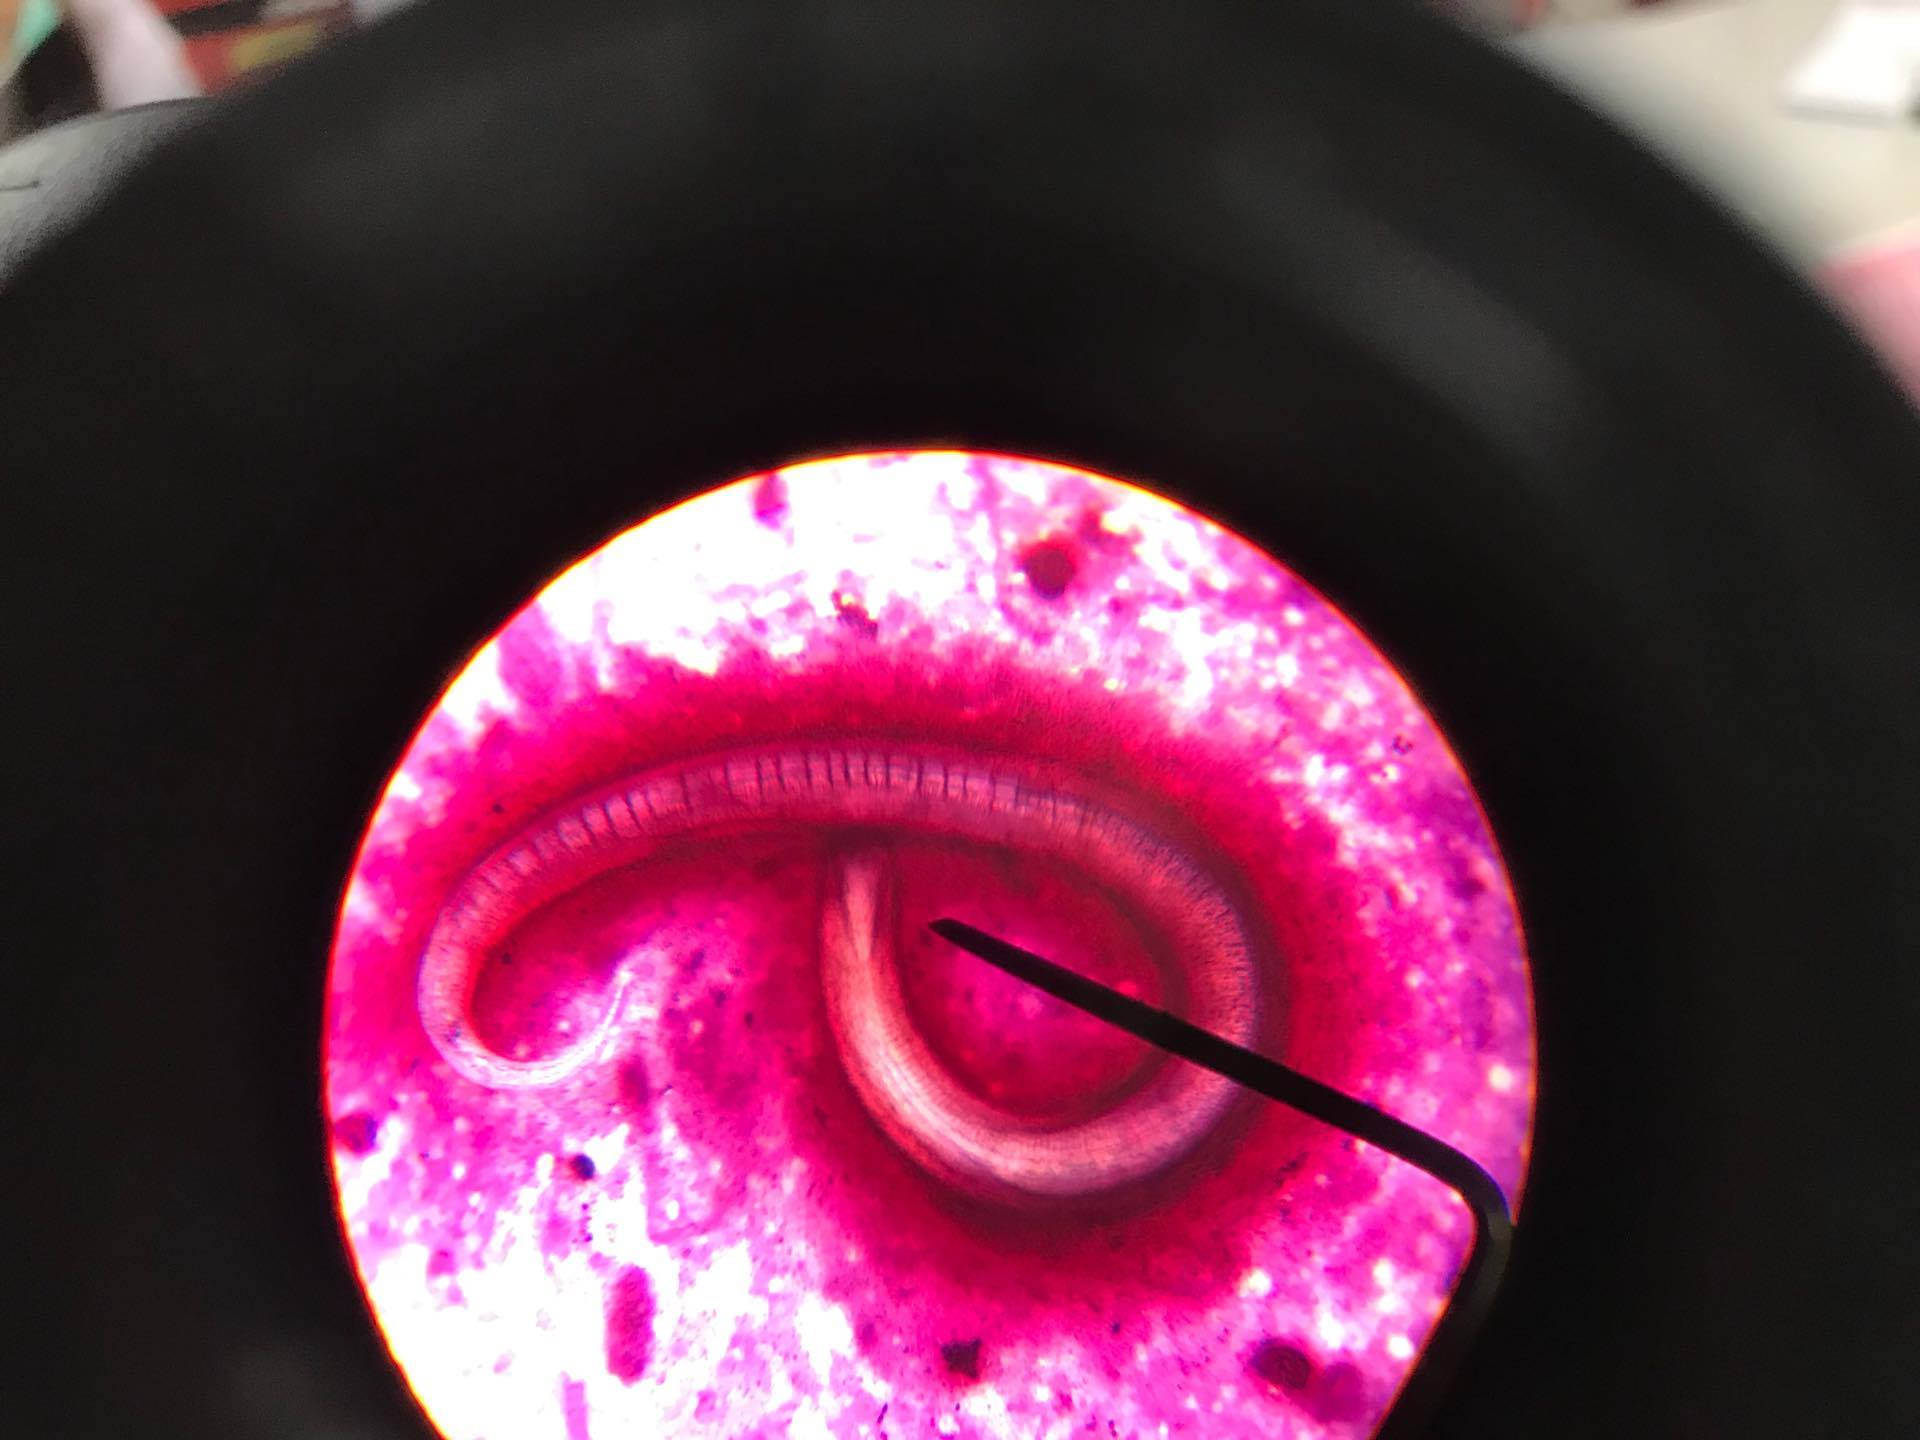 Strongyloides Stercoralis in sputum Toxocariasis